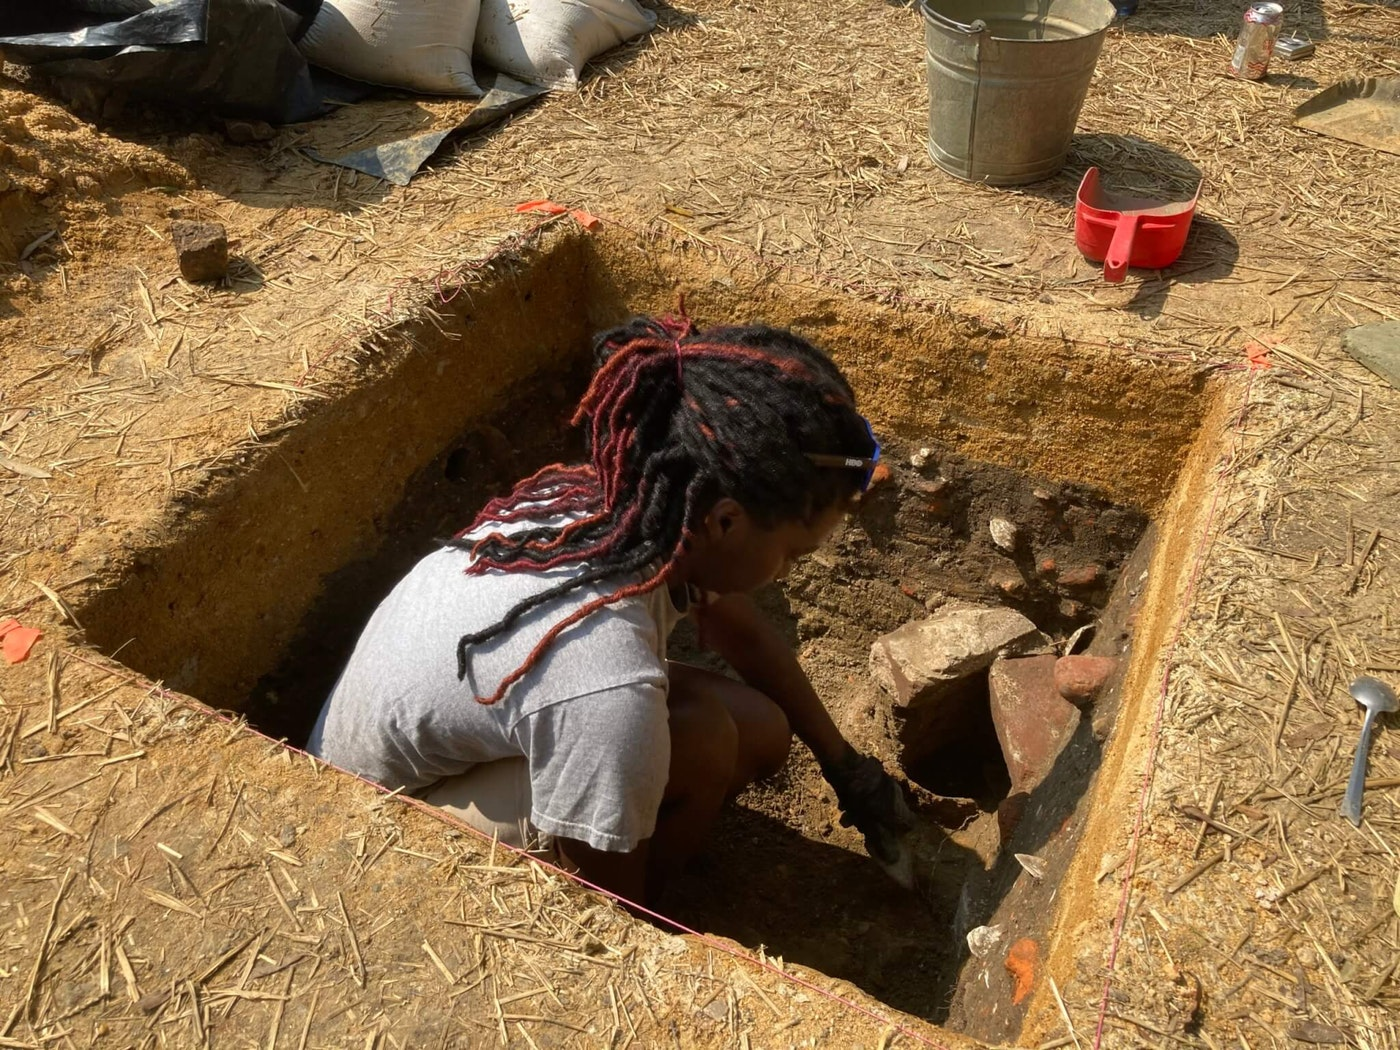 Colonial Williamsburg Archaeological Field Technician DéShondra Dandridge at the excavation site of First Baptist Church's original permanent location on South Nassau Street, Sept. 23, 2020. This year a partnership led by First Baptist Church and Colonial Williamsburg has resumed archaeological investigation of the site, which last took place in 1957.  Photo courtesy of Colonial Williamsburg.